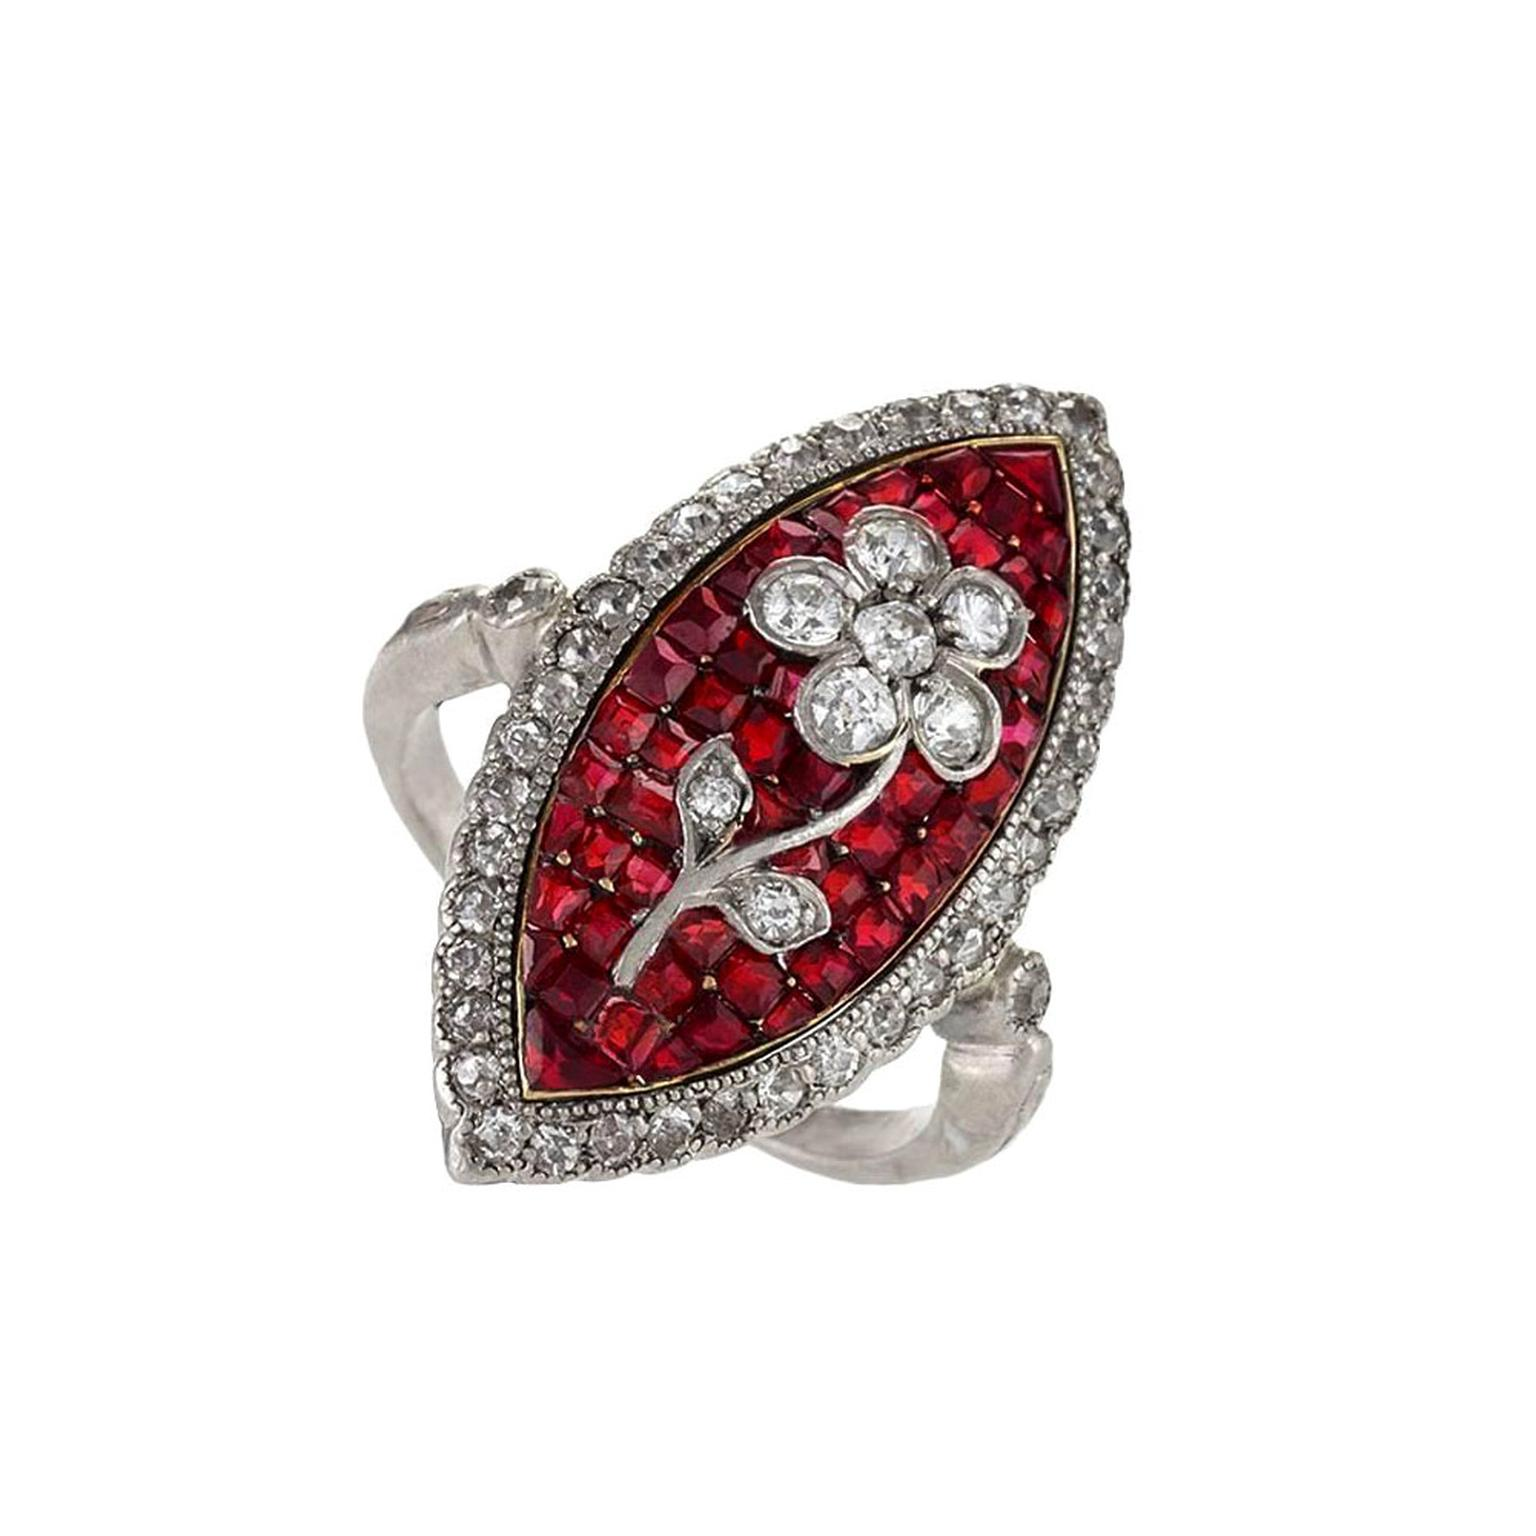 Macklowe Gallery diamond and ruby ring